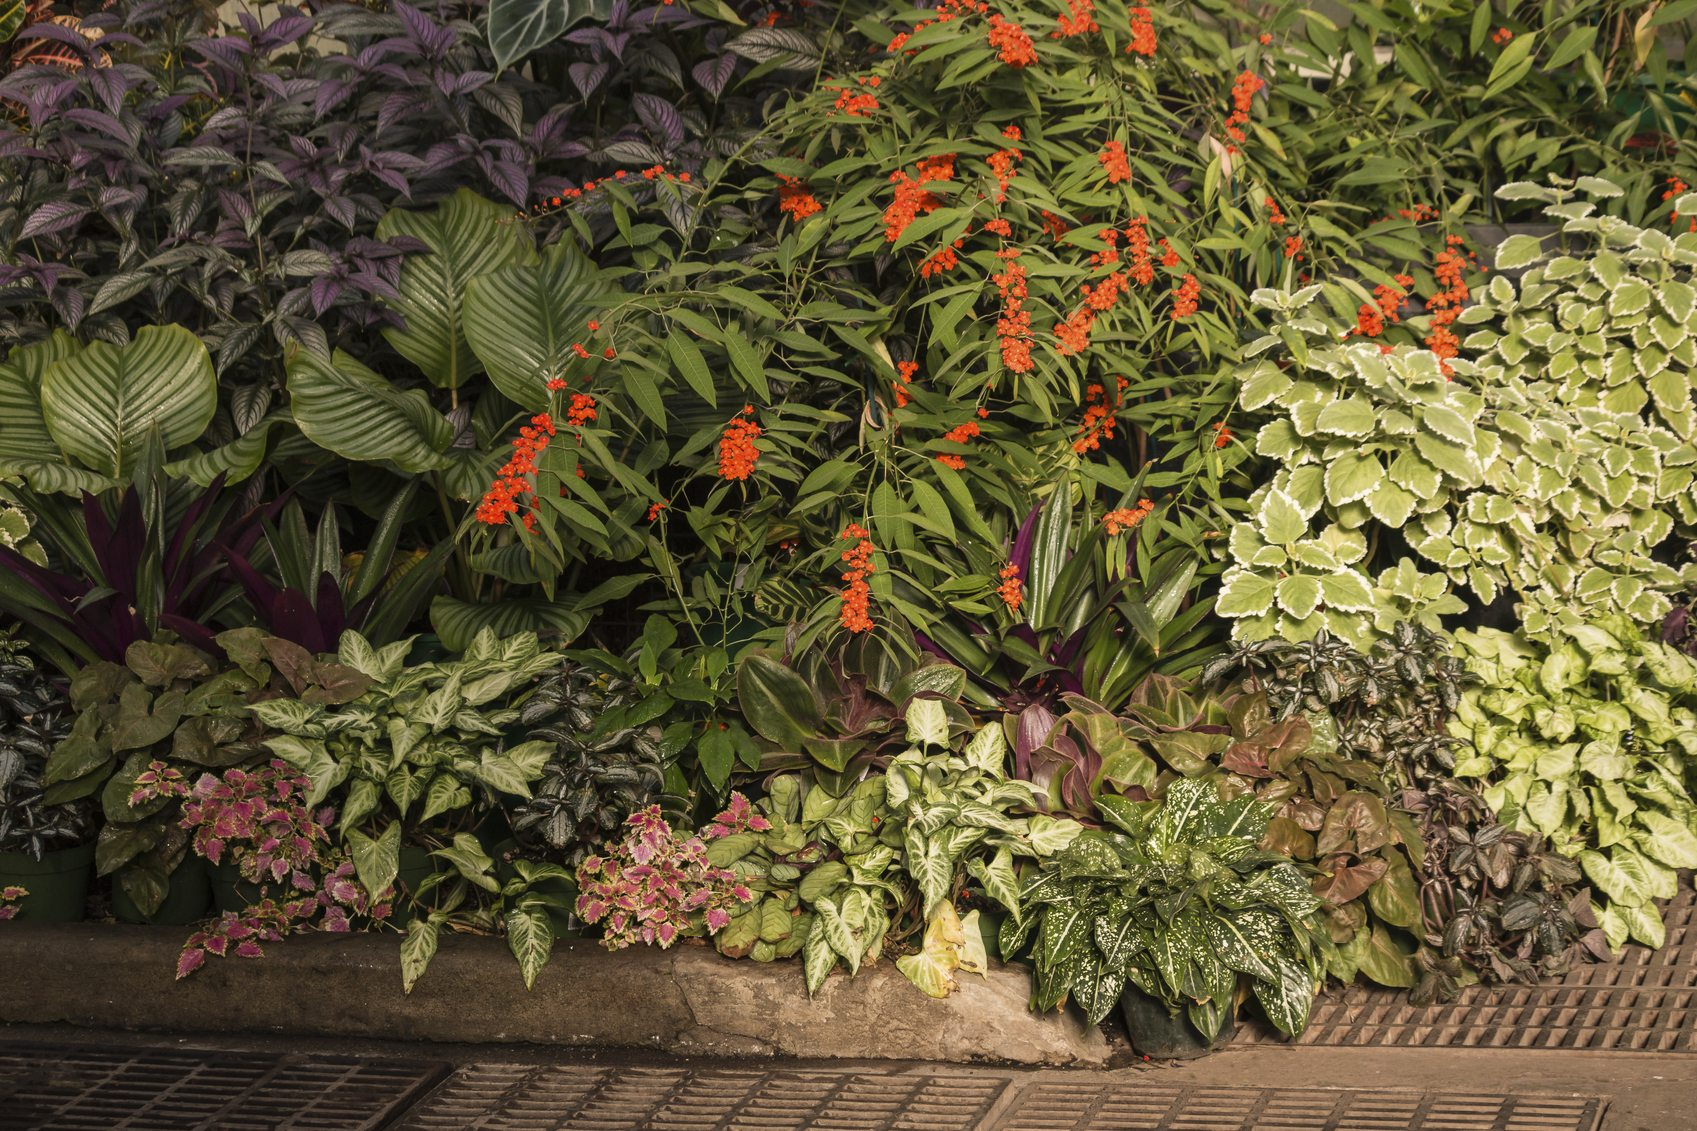 Tropical Shade Garden Plants: Tips On Creating A Tropical Shade Garden